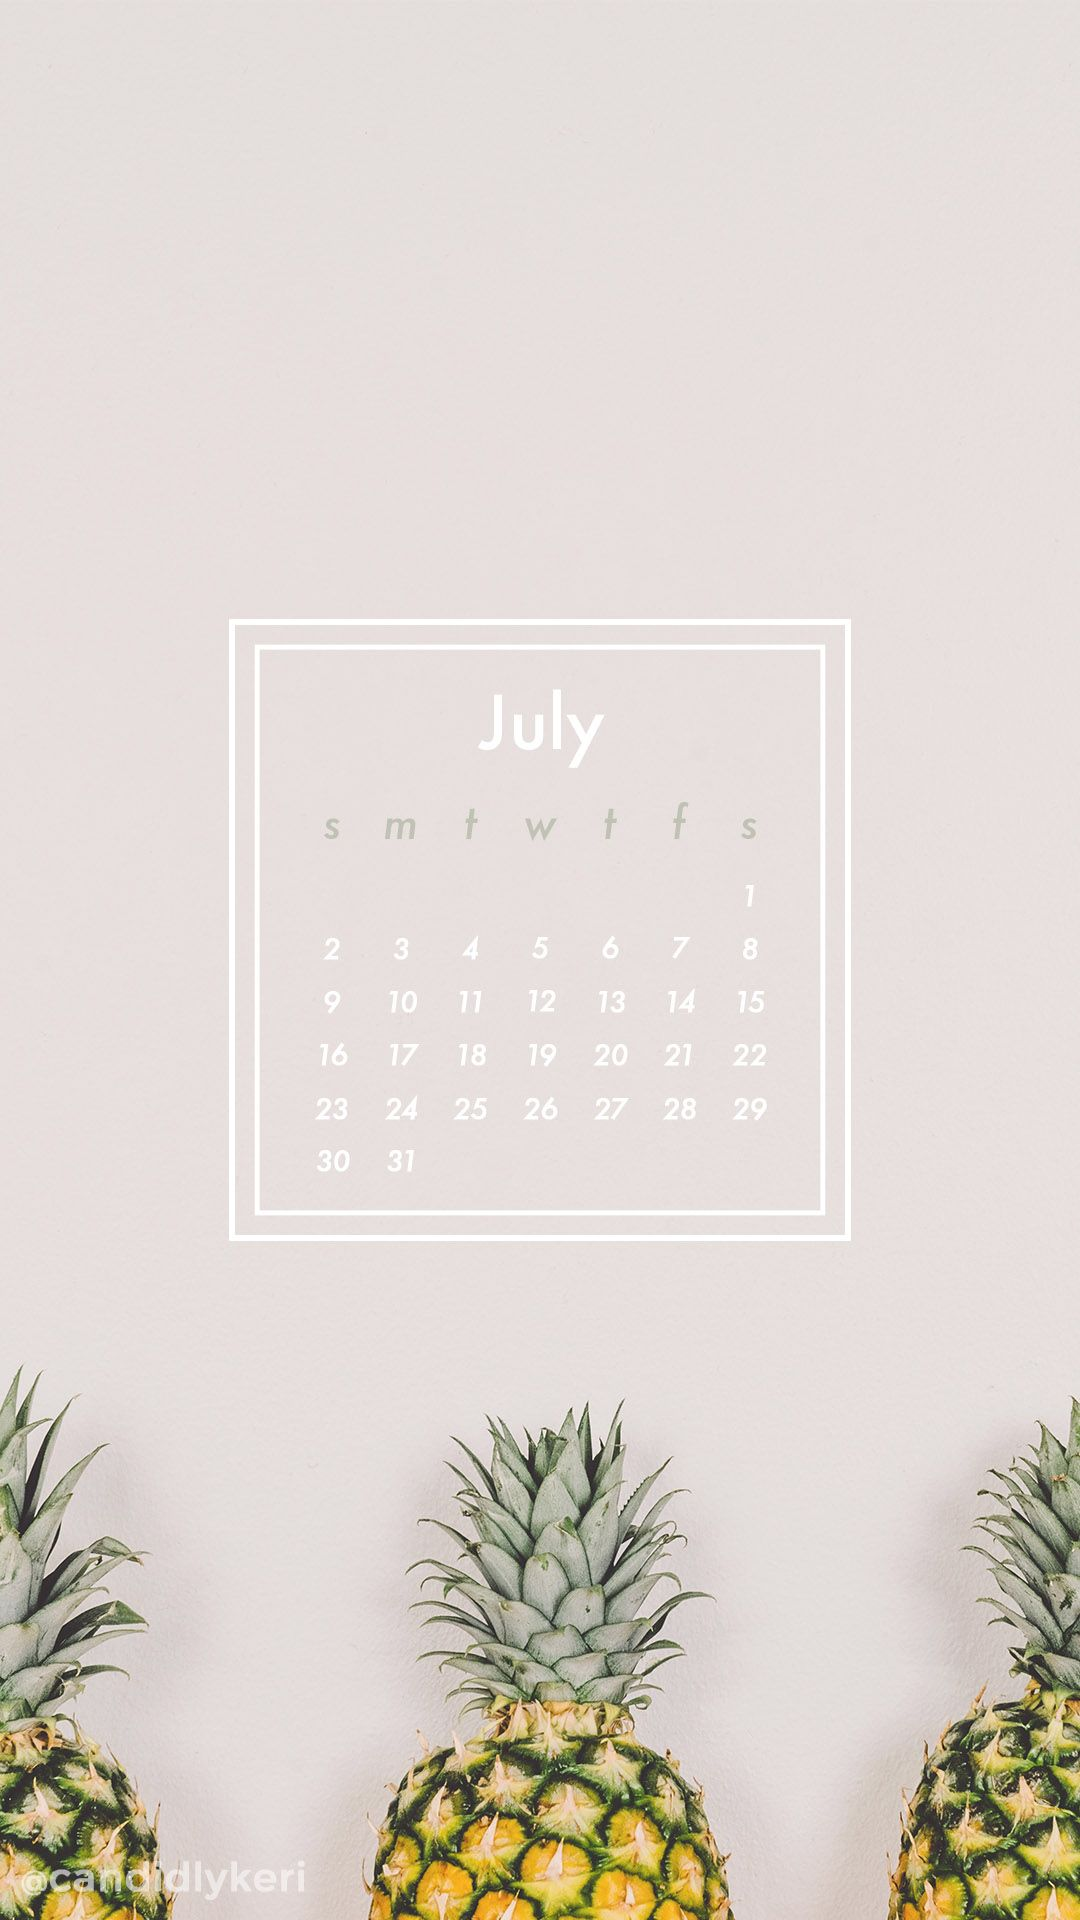 Pineapple fun geo shape summer July calendar 2017 wallpaper you can download for free on the blog! For any device; mobile, desktop, iphone, android!